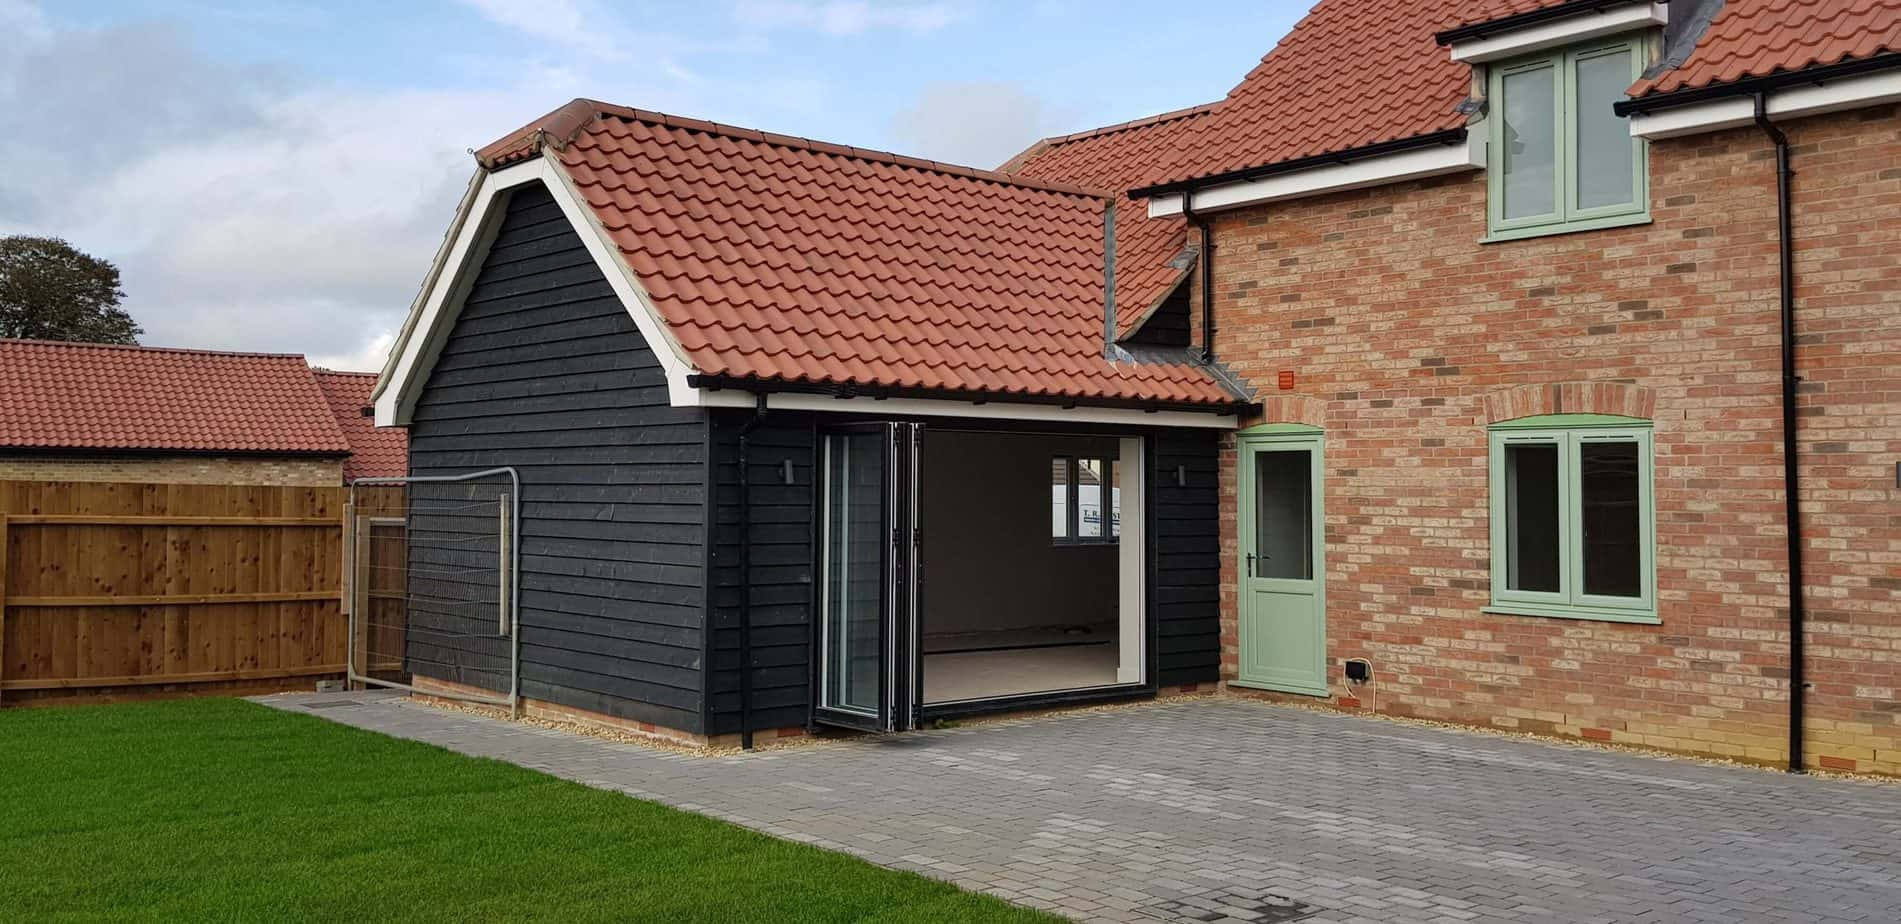 upward-barn conversions-traditional build-plot5-6